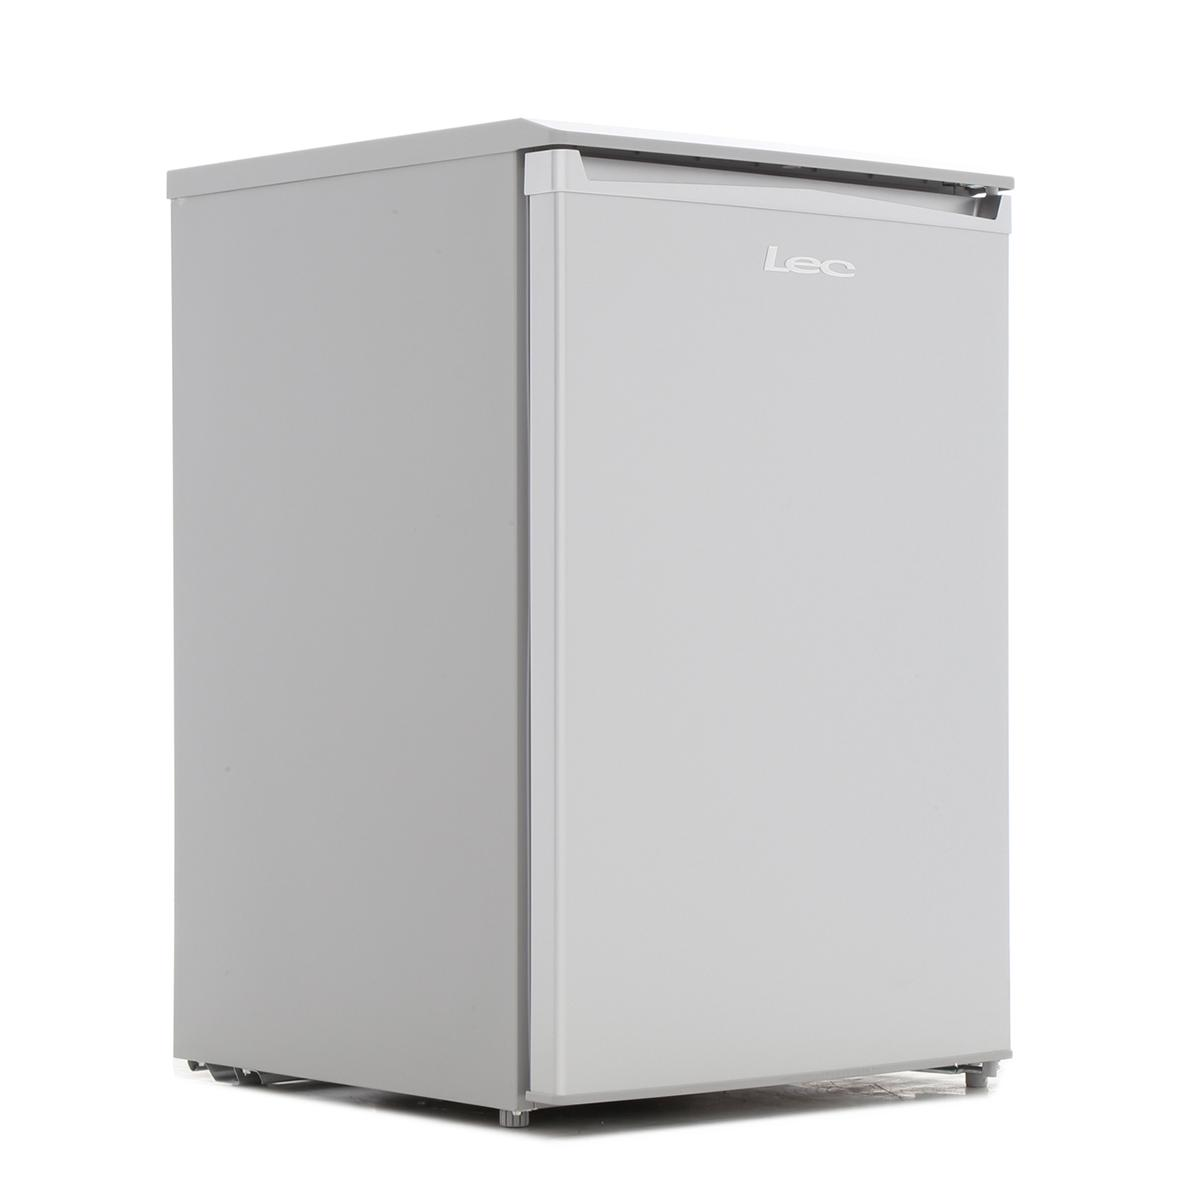 Lec R5517 Silver Fridge with Ice Box